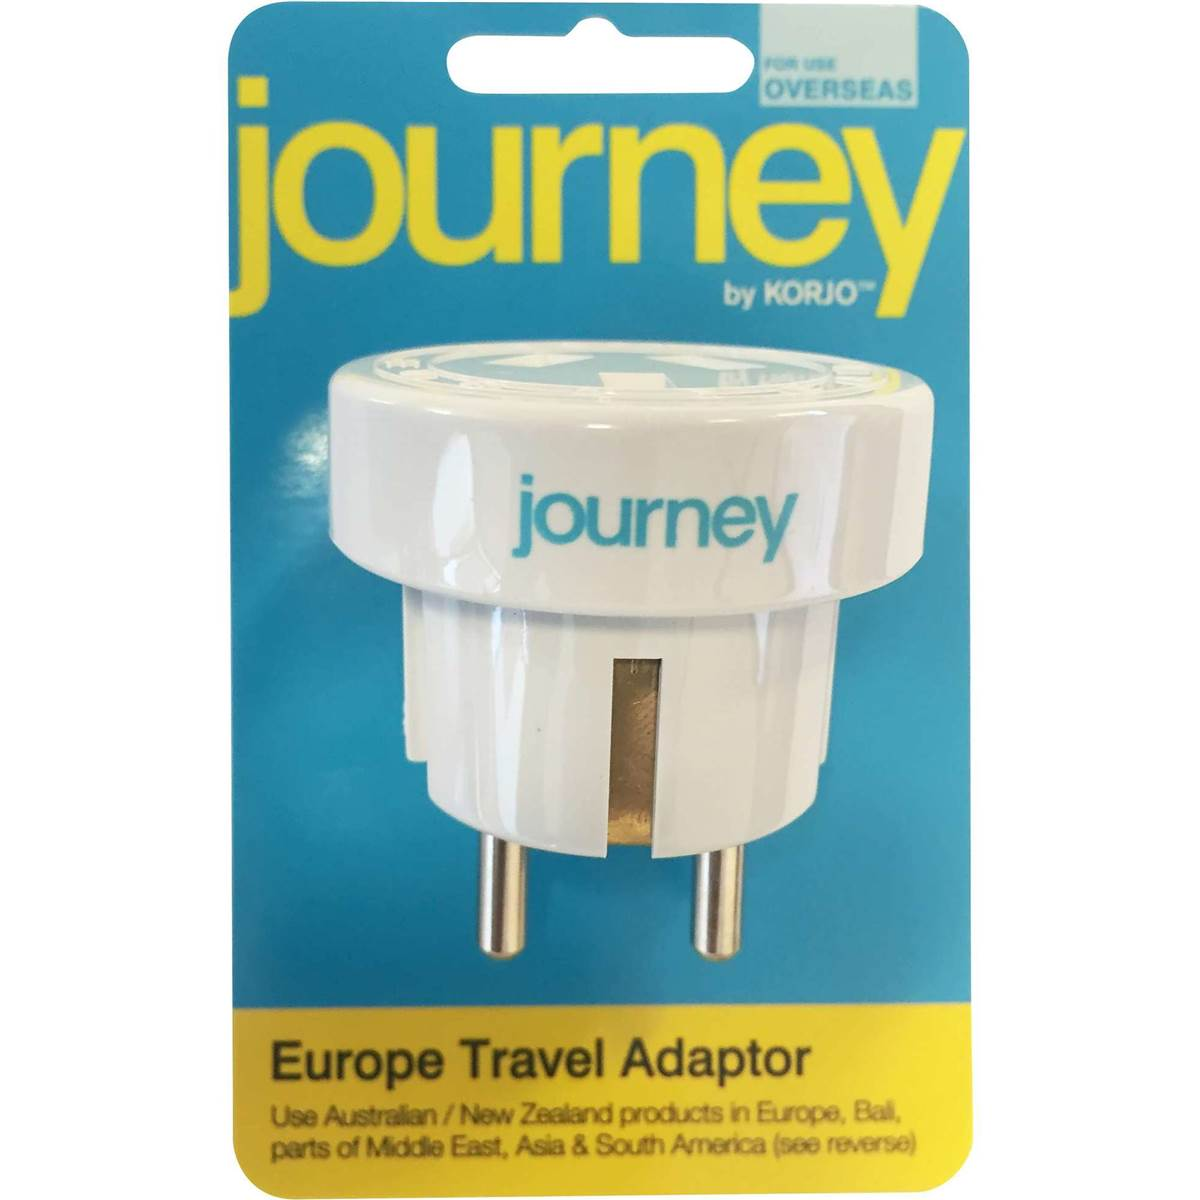 Coles Travel Adaptor Korjo Journey Europe Adaptor Each Woolworths